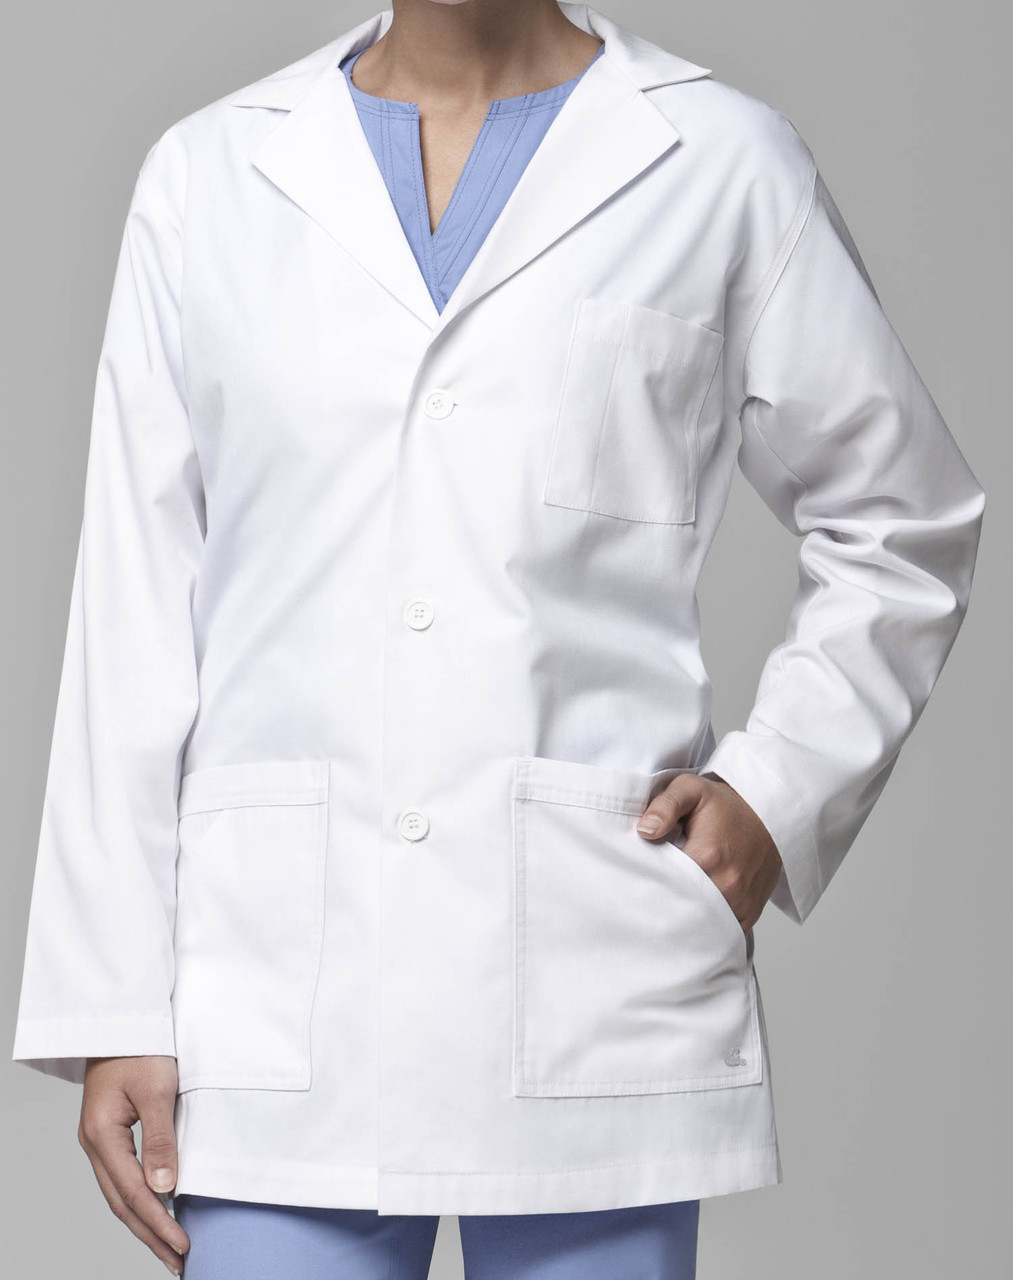 Doctors Lab coats white color full sleeve with embroidery